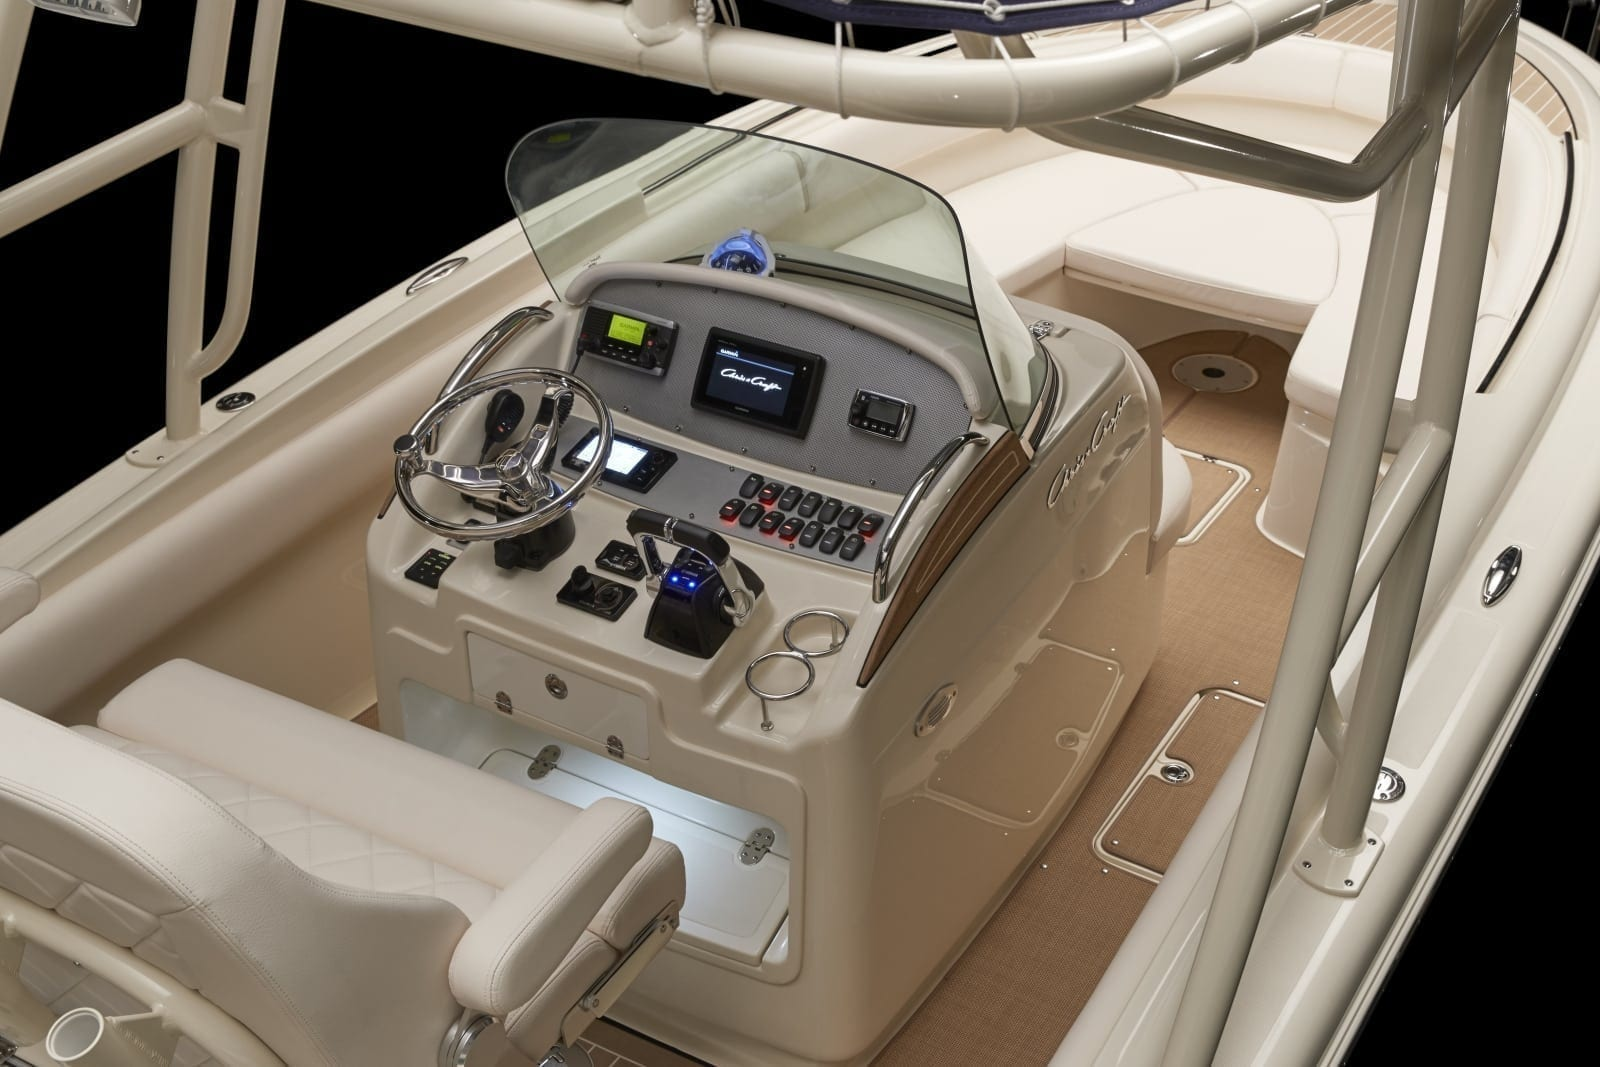 Chris Craft Catalina 26 Steering Wheel and Controls